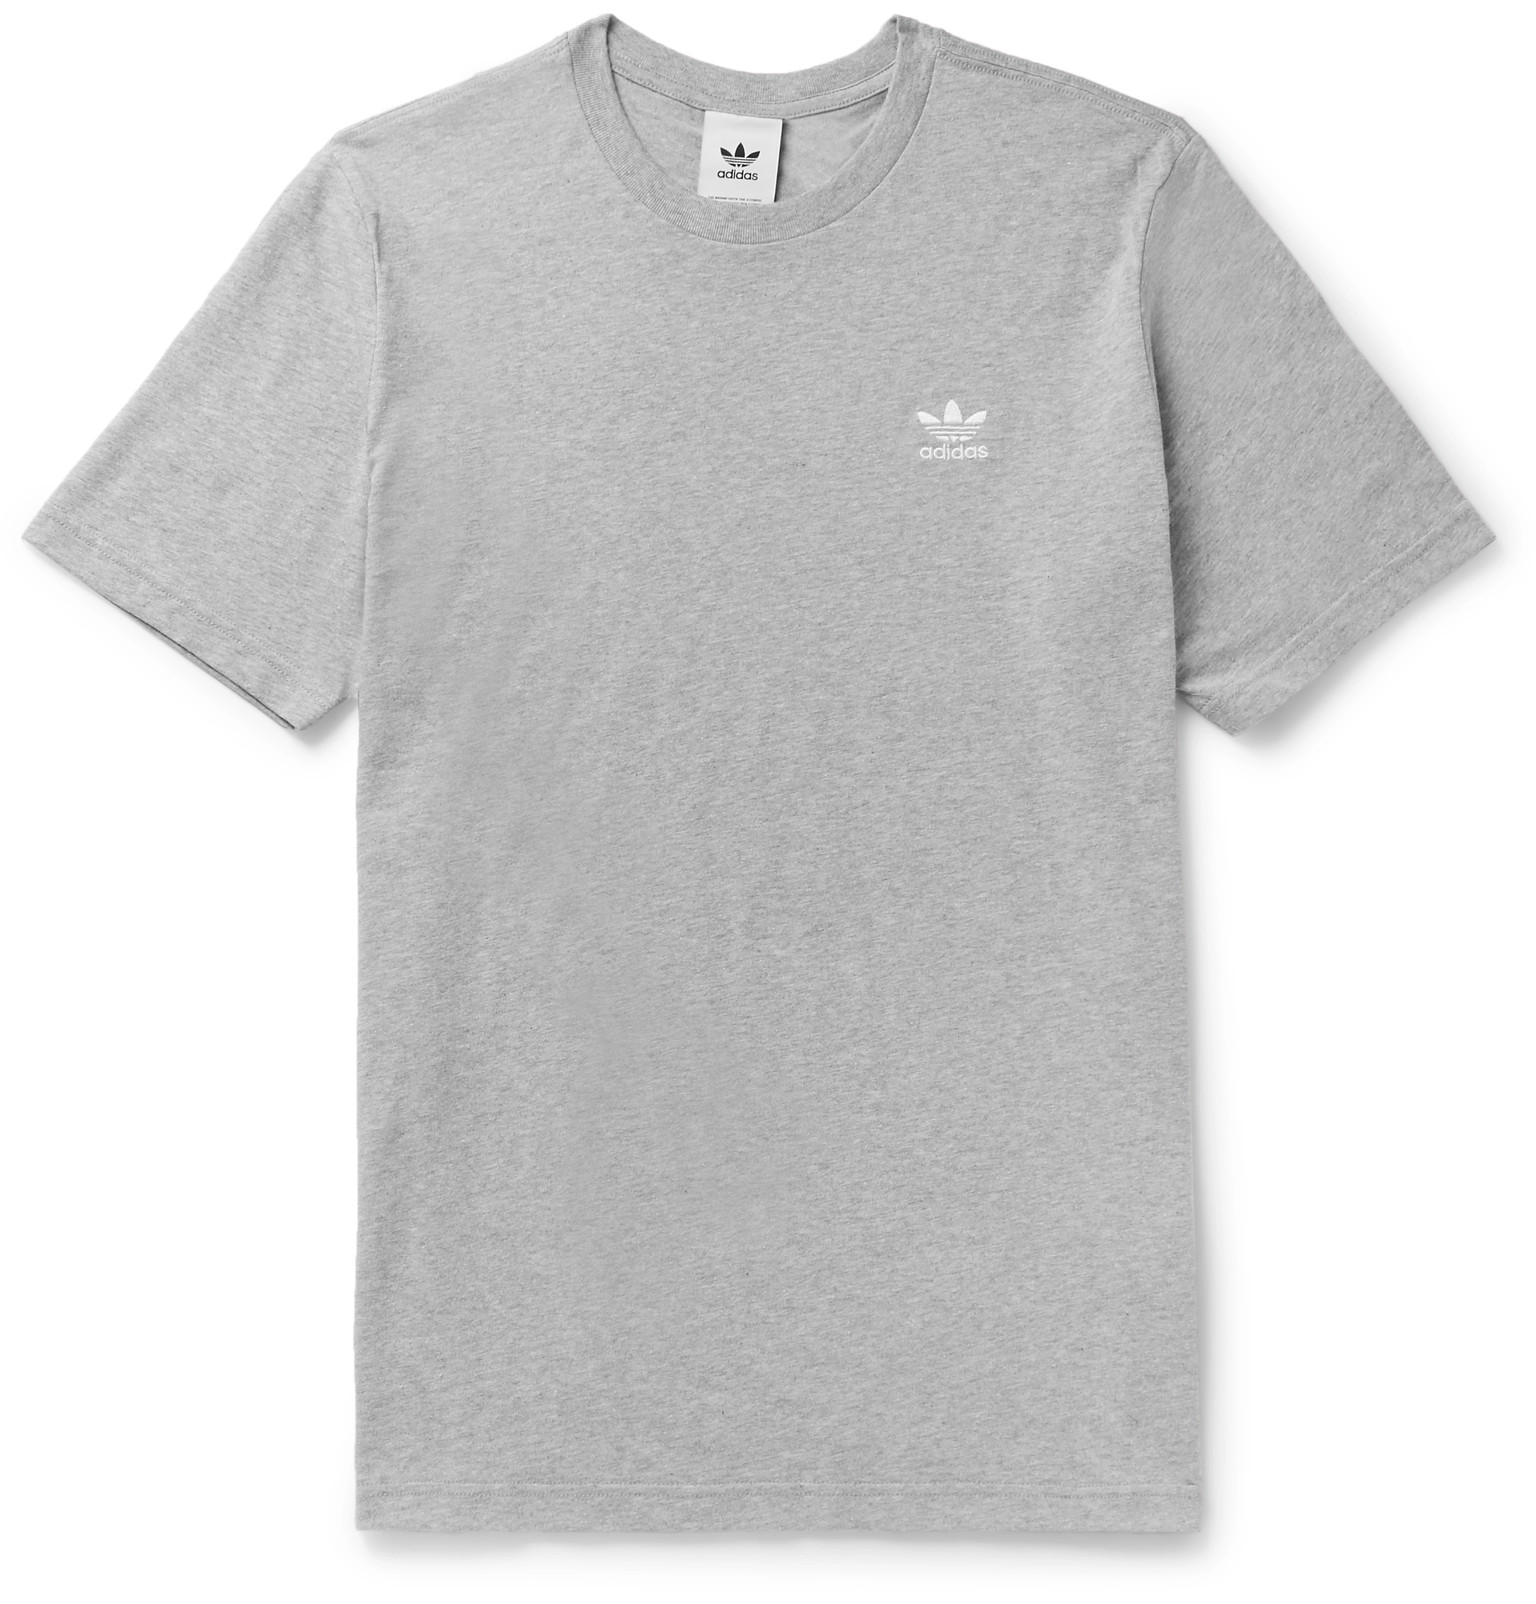 Trefoil Essentials T Shirt Grey